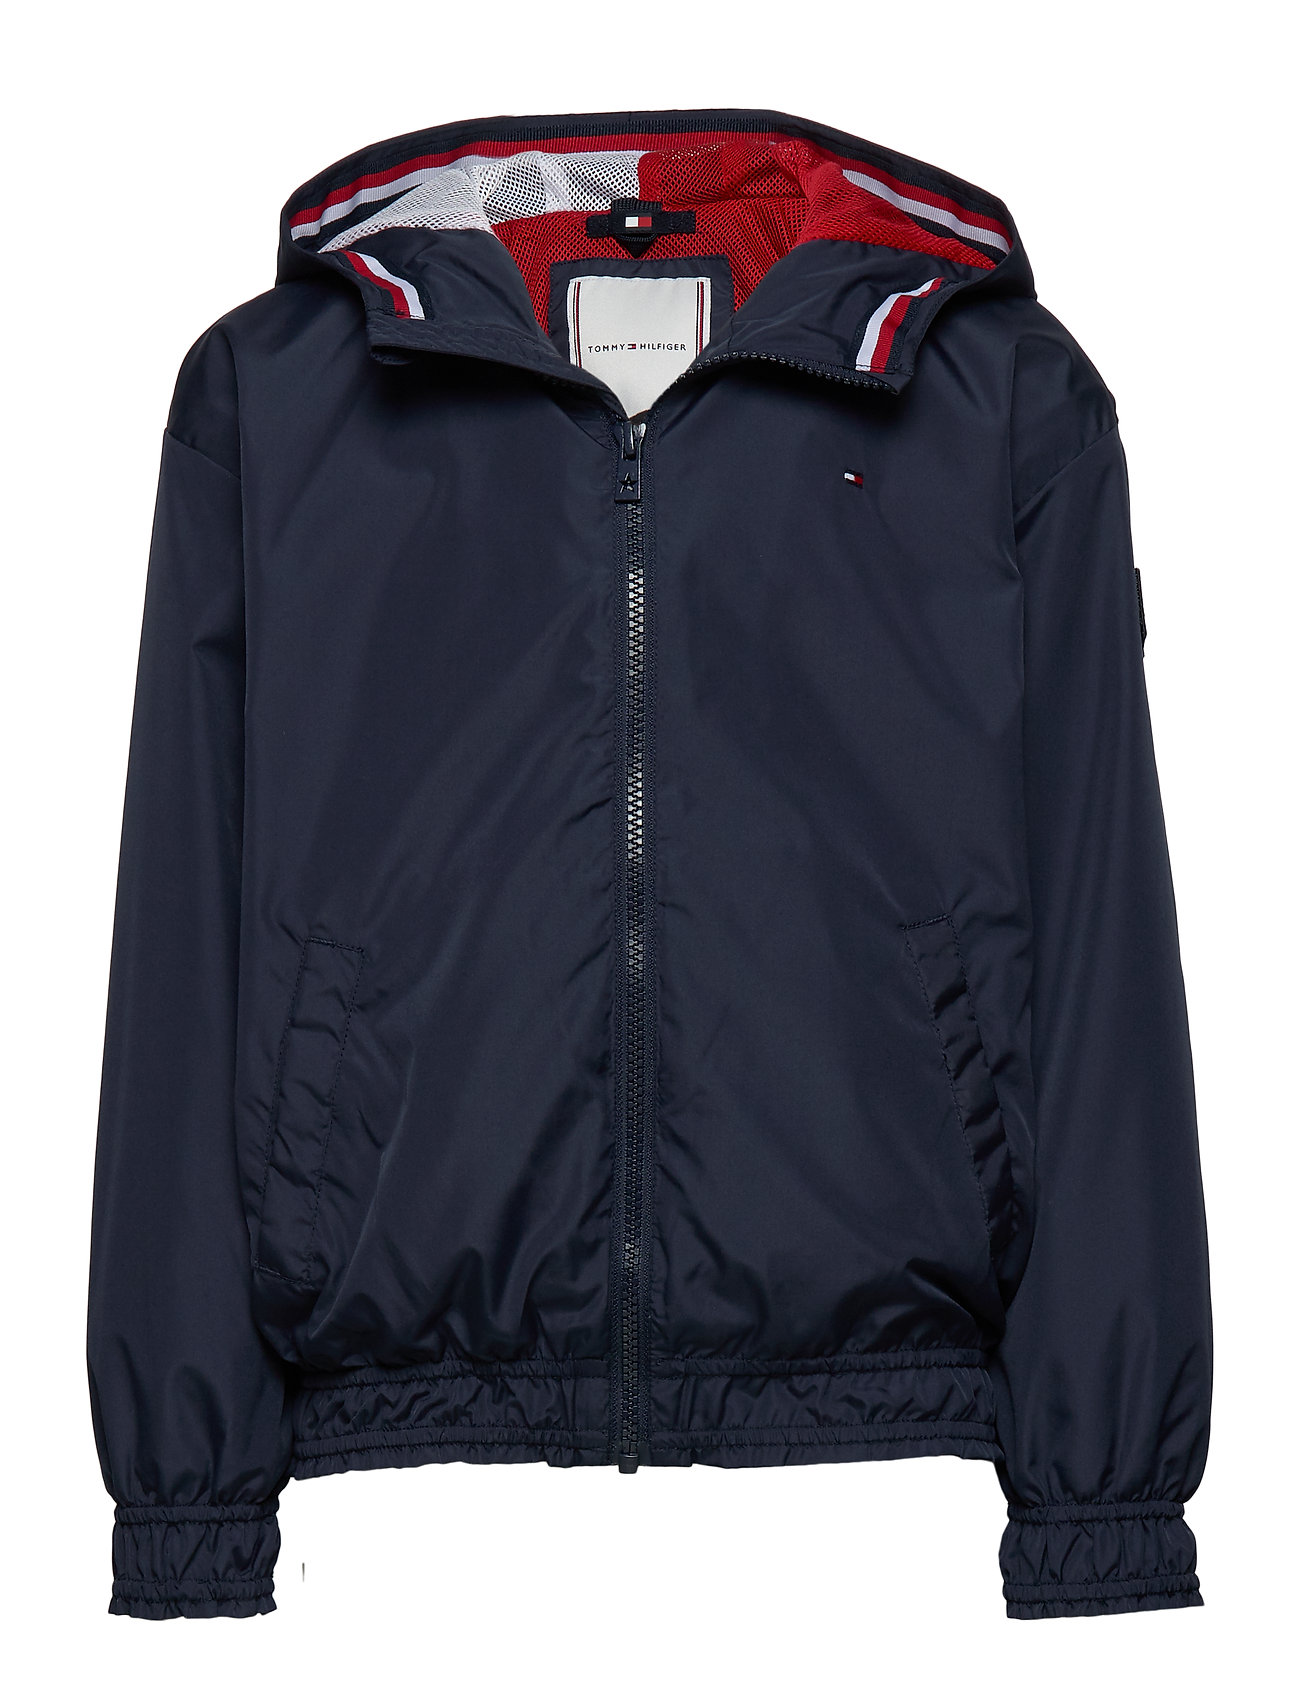 Tommy Hilfiger ESSENTIAL LIGHT WEIGHT JACKET - TWILIGHT NAVY